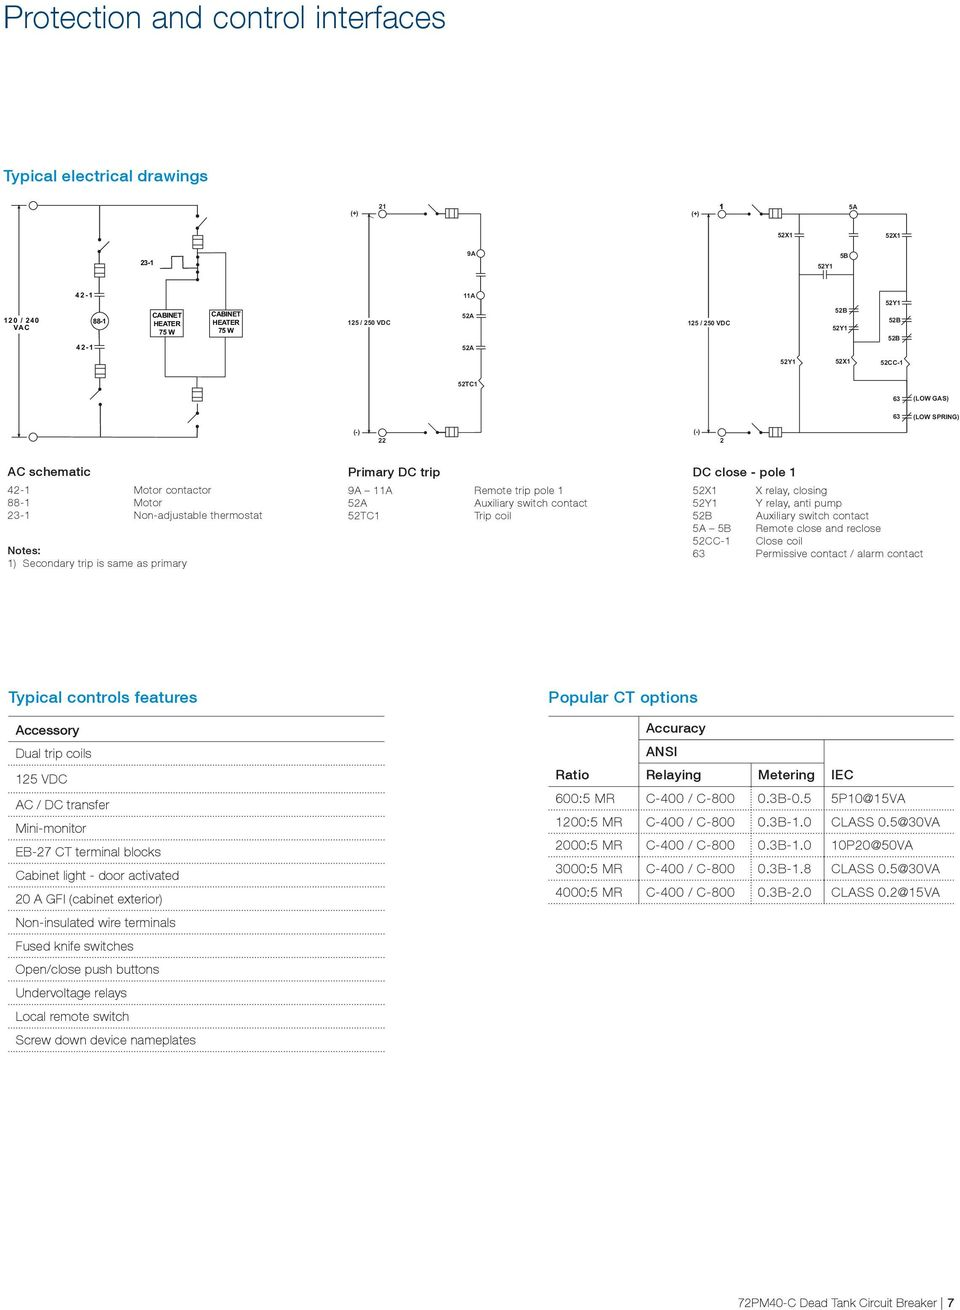 Dead Tank Circuit Breaker 72pm40 C Proven Reliability Through Common Frequency Includes Knife Switch Inverter Secondary Trip Is Same As Primary Dc 9a 11a Remote Pole 1 52a